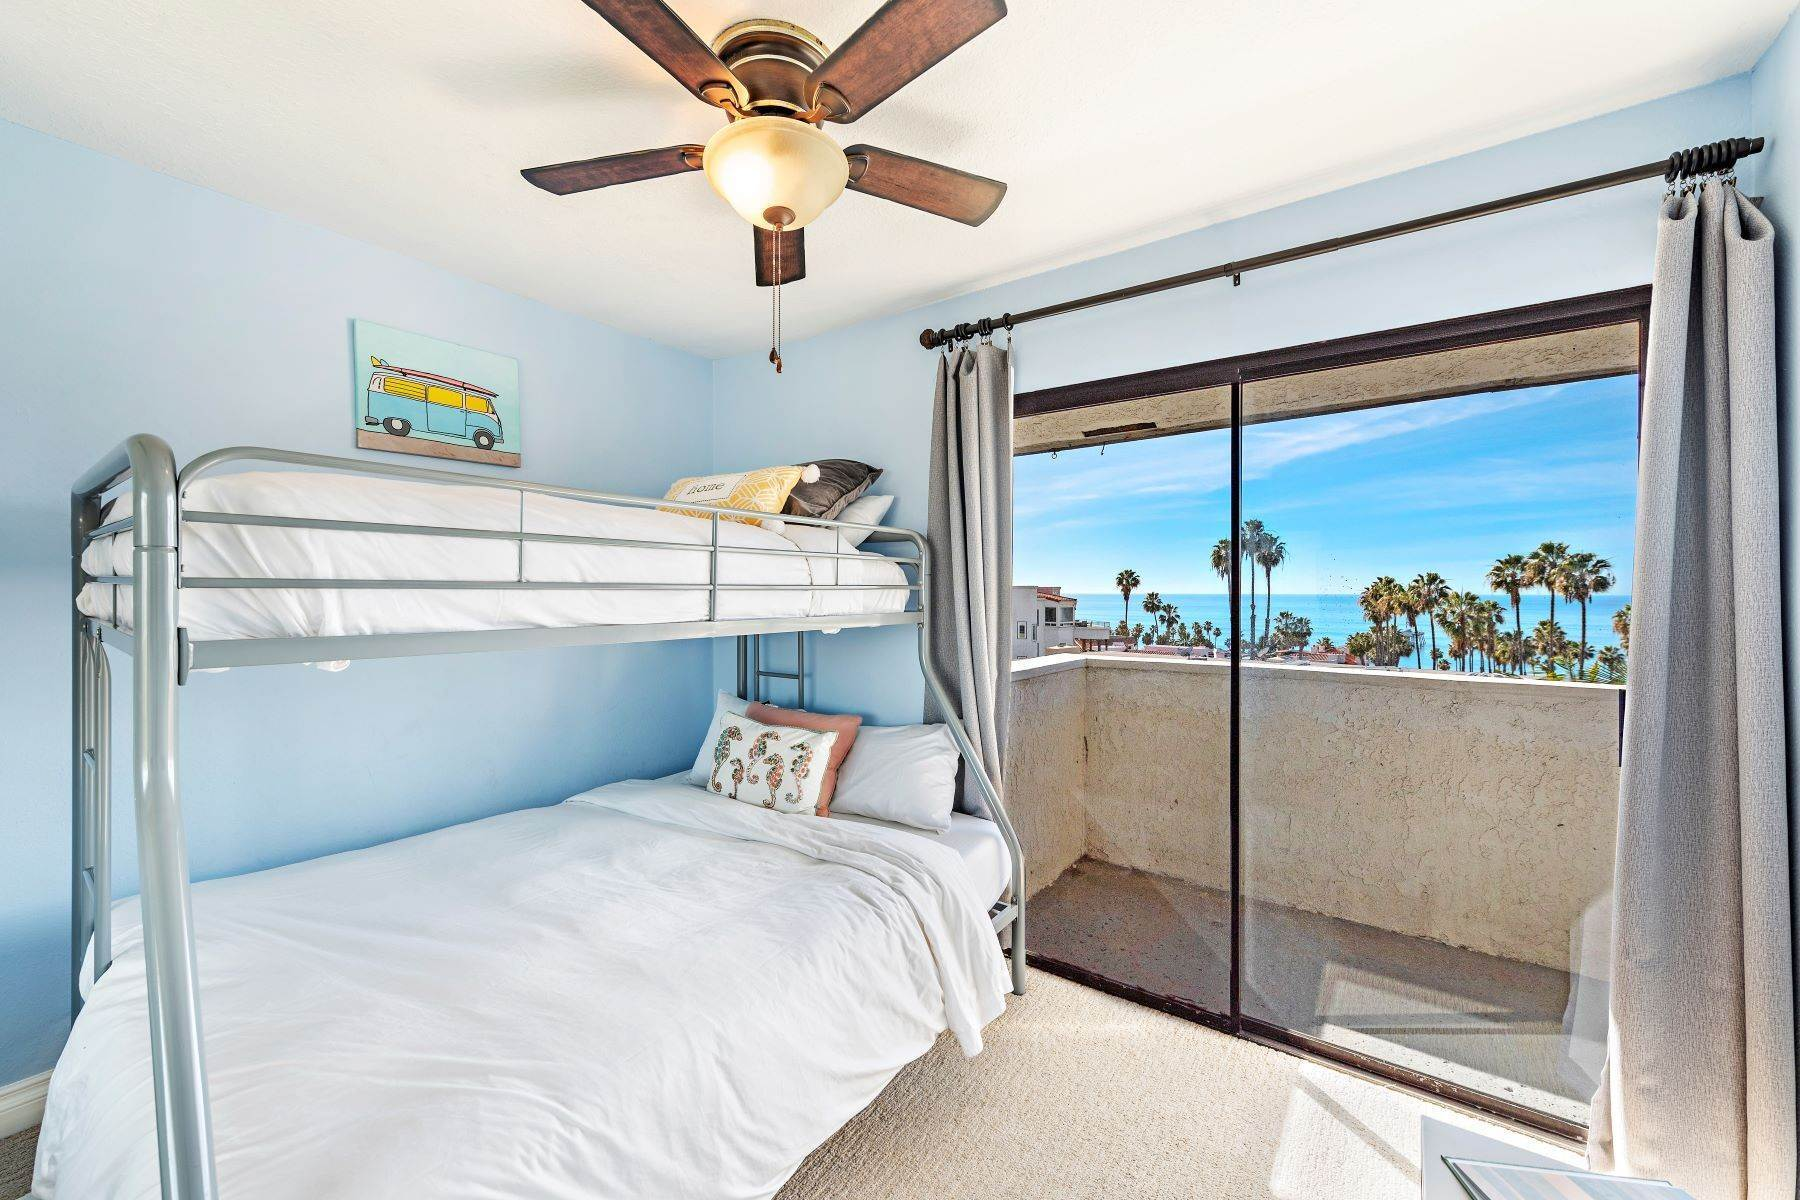 25. Condominiums for Sale at 321 Acebo Lane Unit #C, San Clemente, CA 92672 321 Acebo Lane, Unit #C San Clemente, California 92672 United States